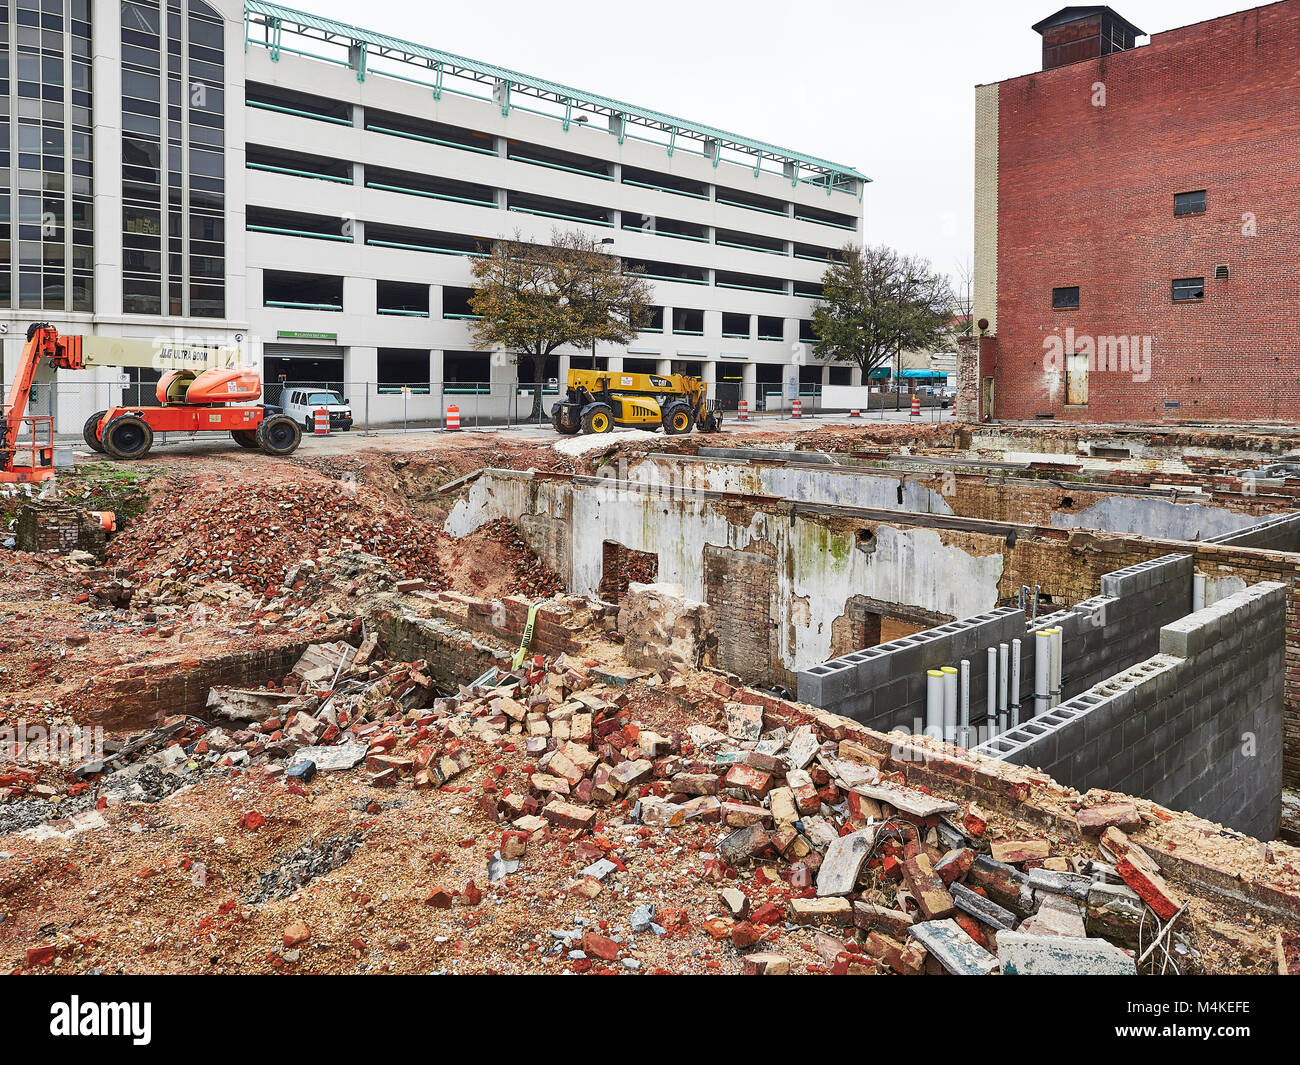 Demolition of an old brick building for remodeling in an urban redevelopment project in downtown Montgomery, Alabama - Stock Image